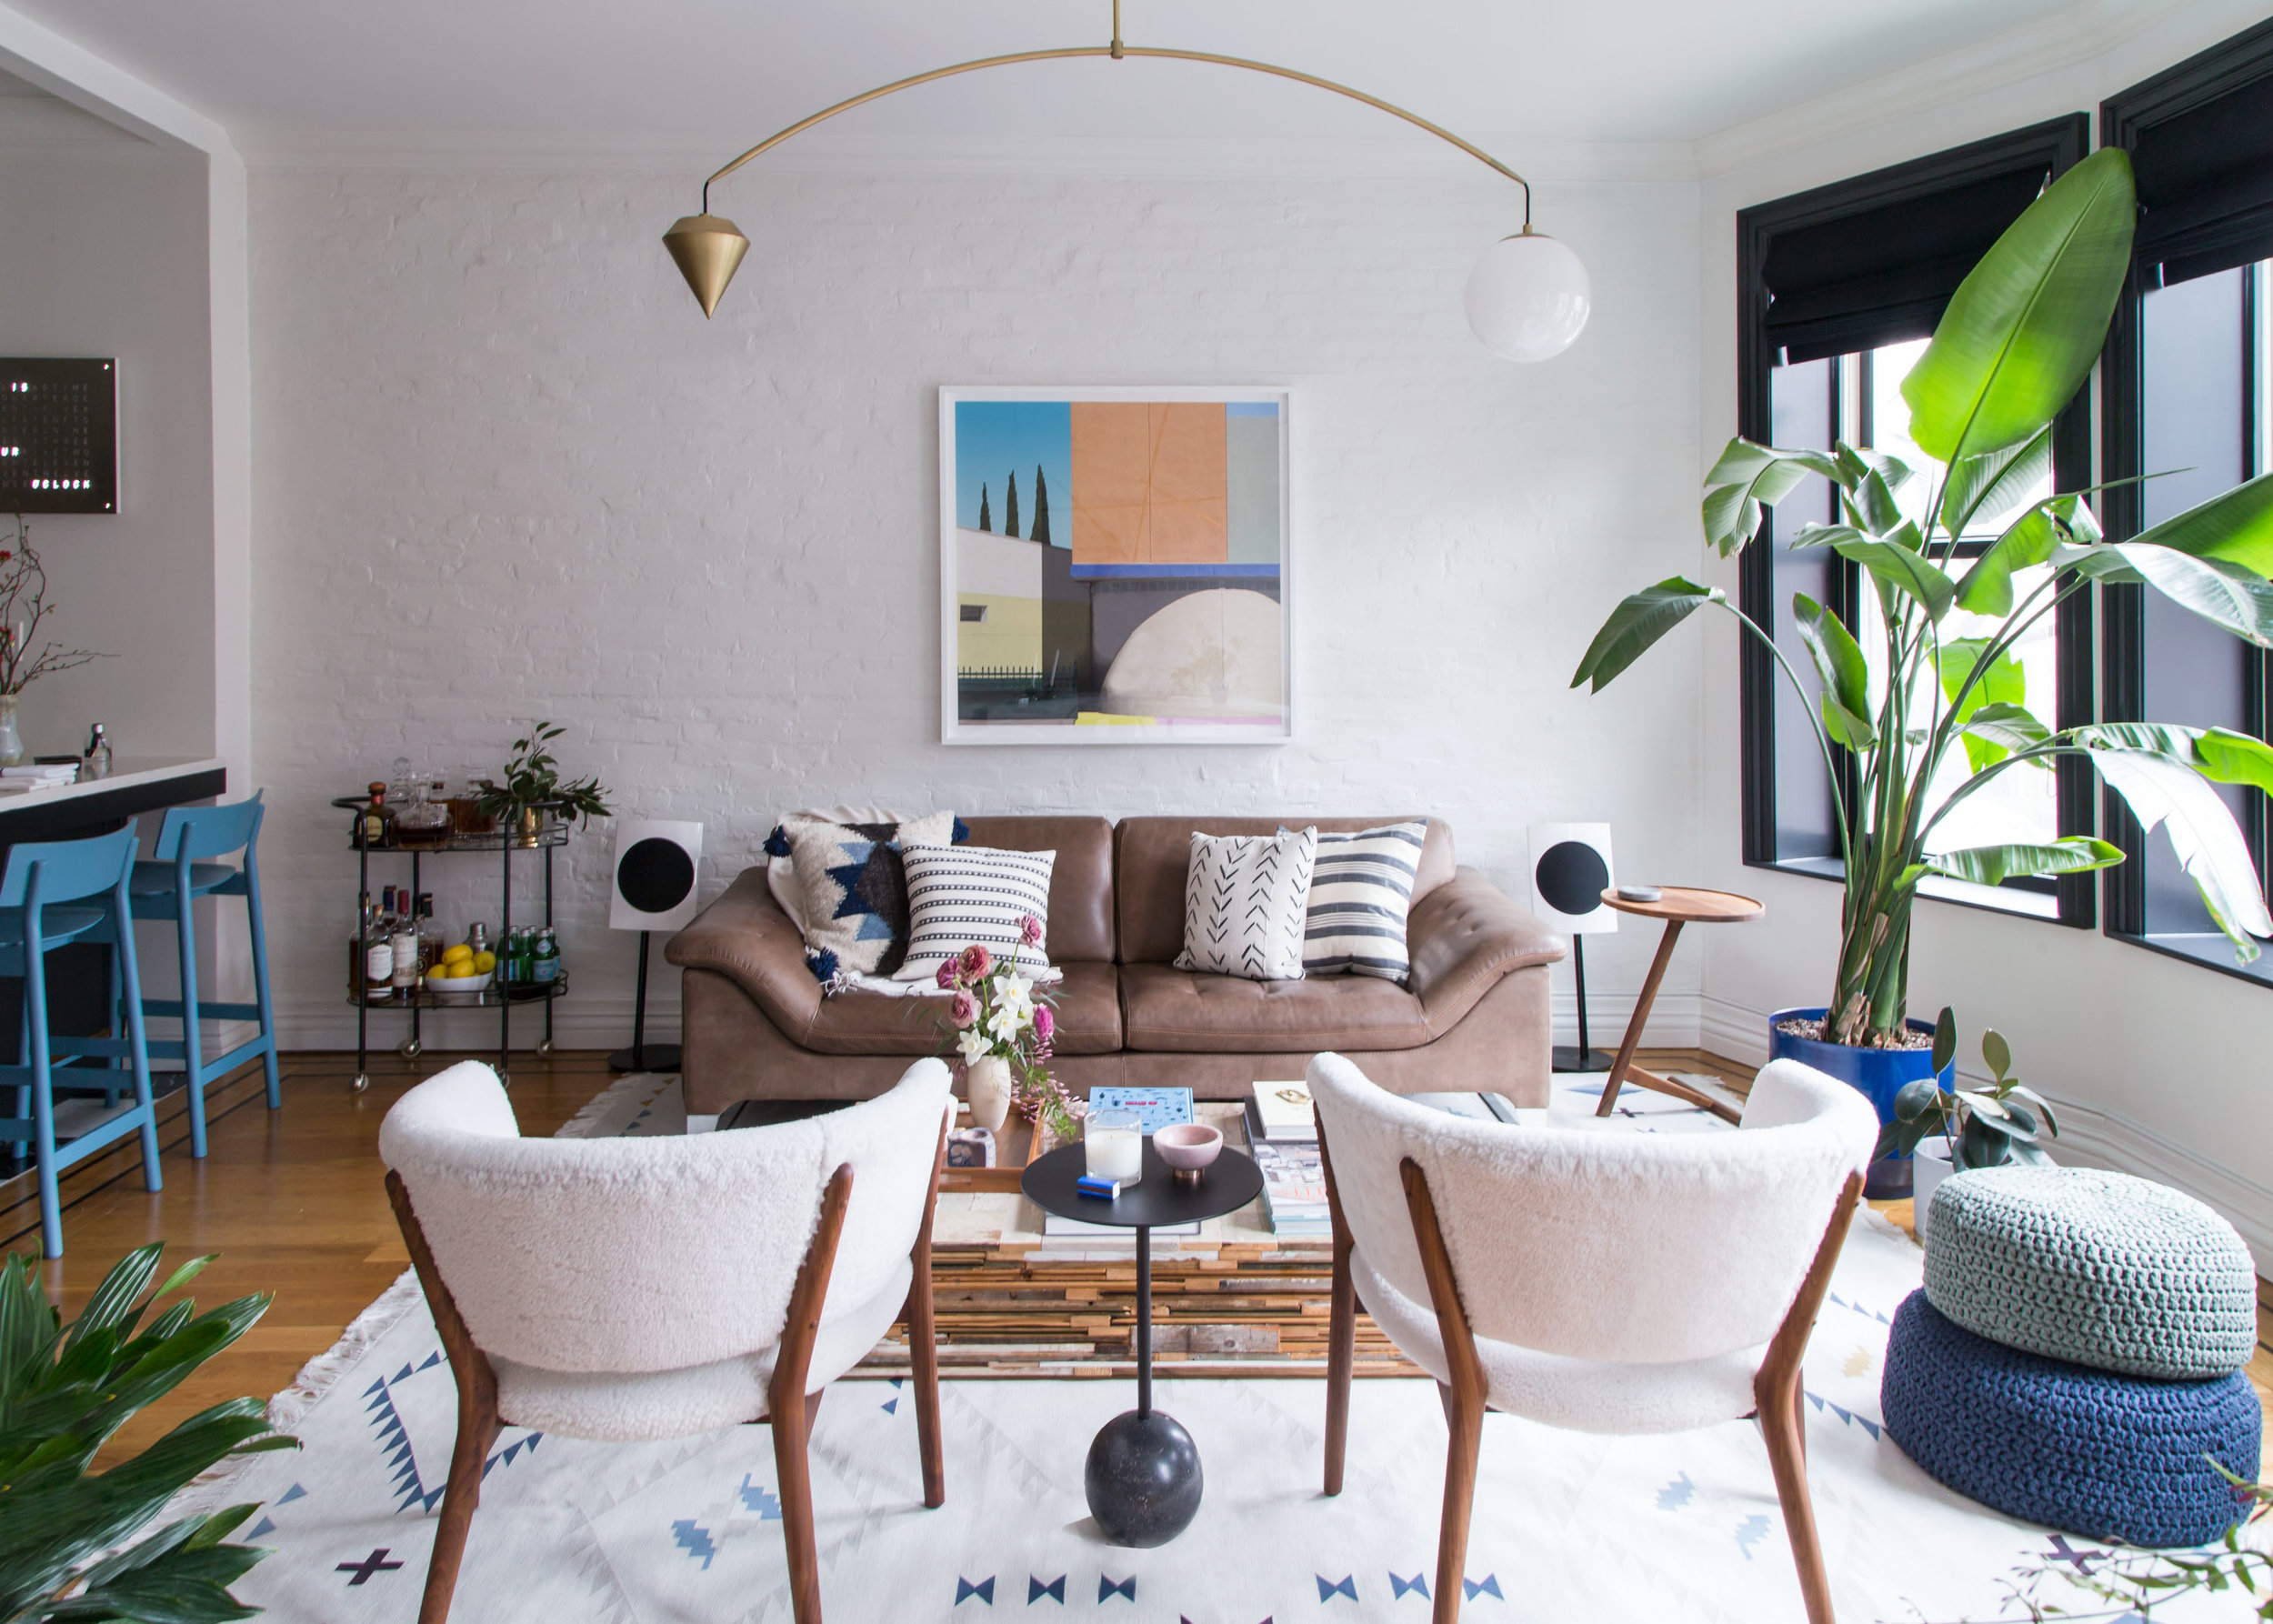 A brown two-seater sofa sits in the middle of a living room, which includes two white chairs, a black side table, a low coffee table with a vase filled with flowers, a large plant by the window, one framed geometric art piece on the wall, and a gold penda